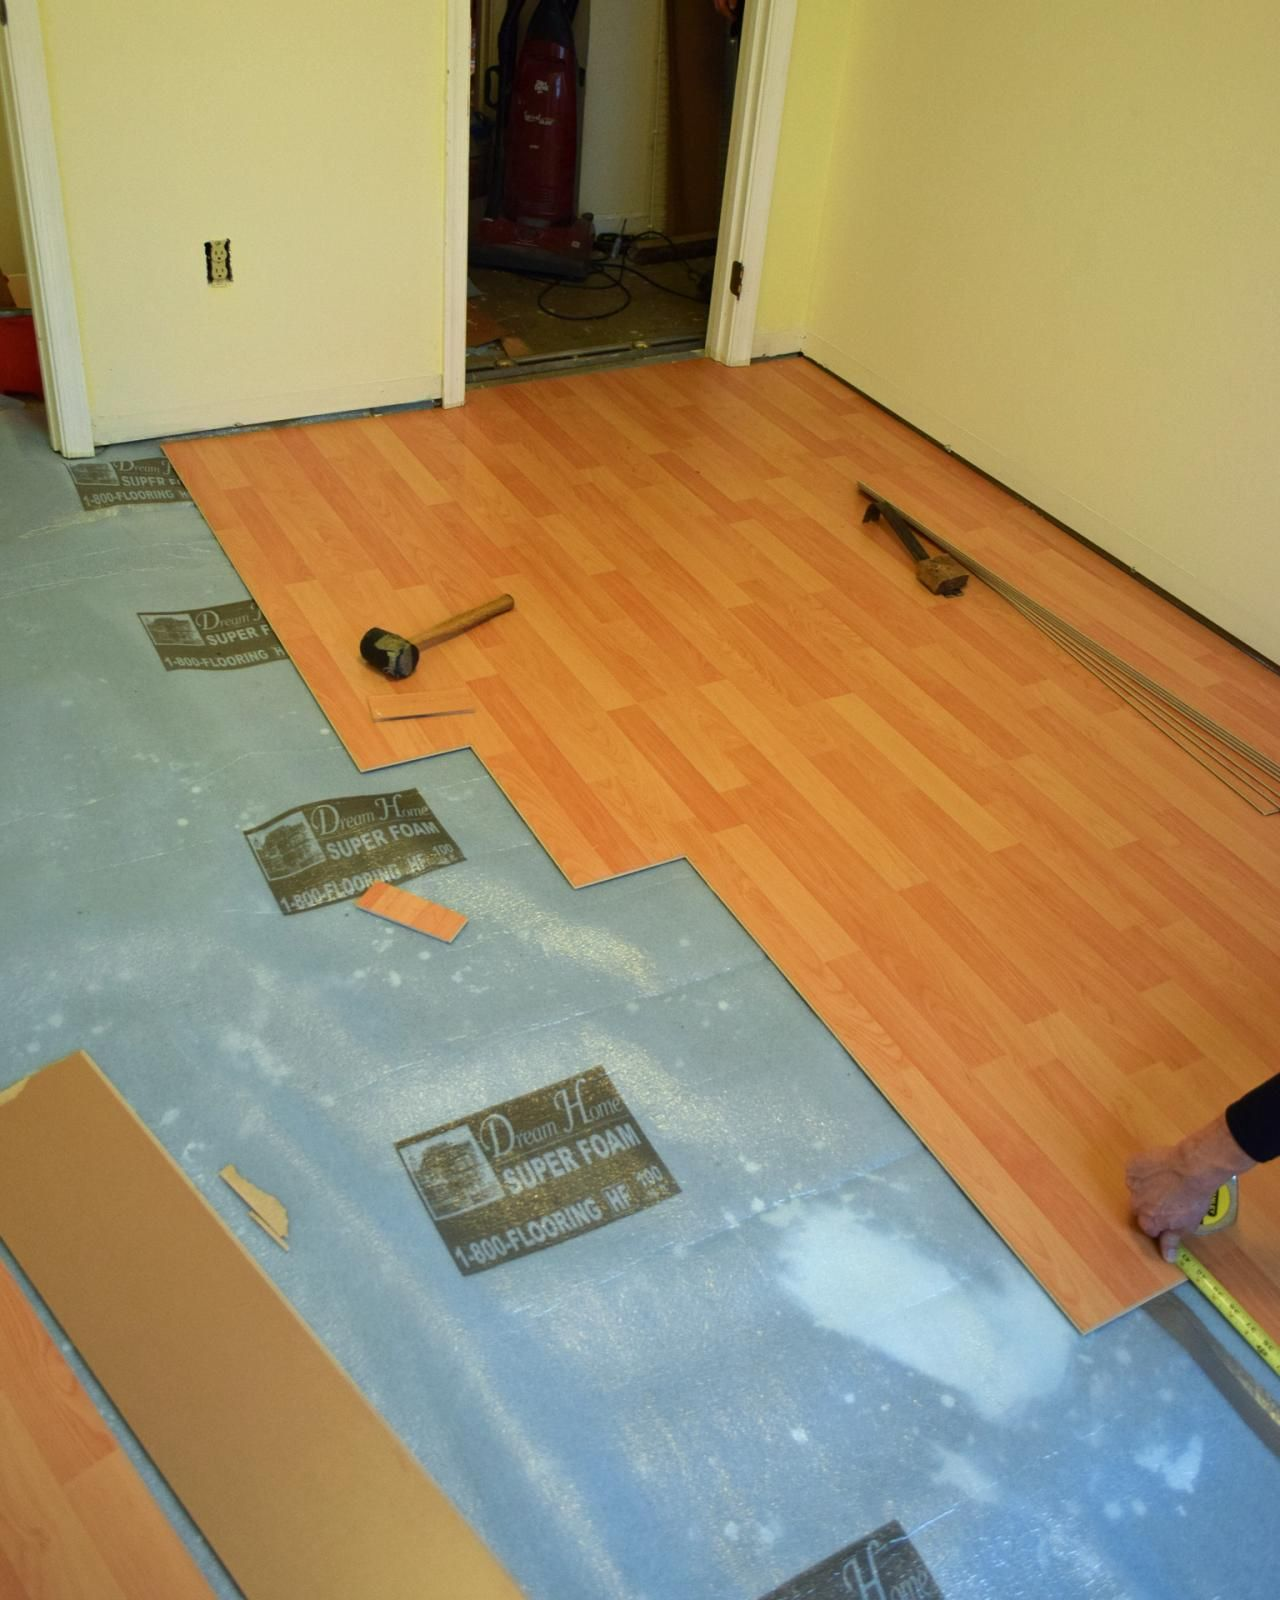 How to install laminate flooring how to remove carpeting and diy network has step by step instructions on how to rip out old carpeting and install a snap together floating floor solutioingenieria Image collections